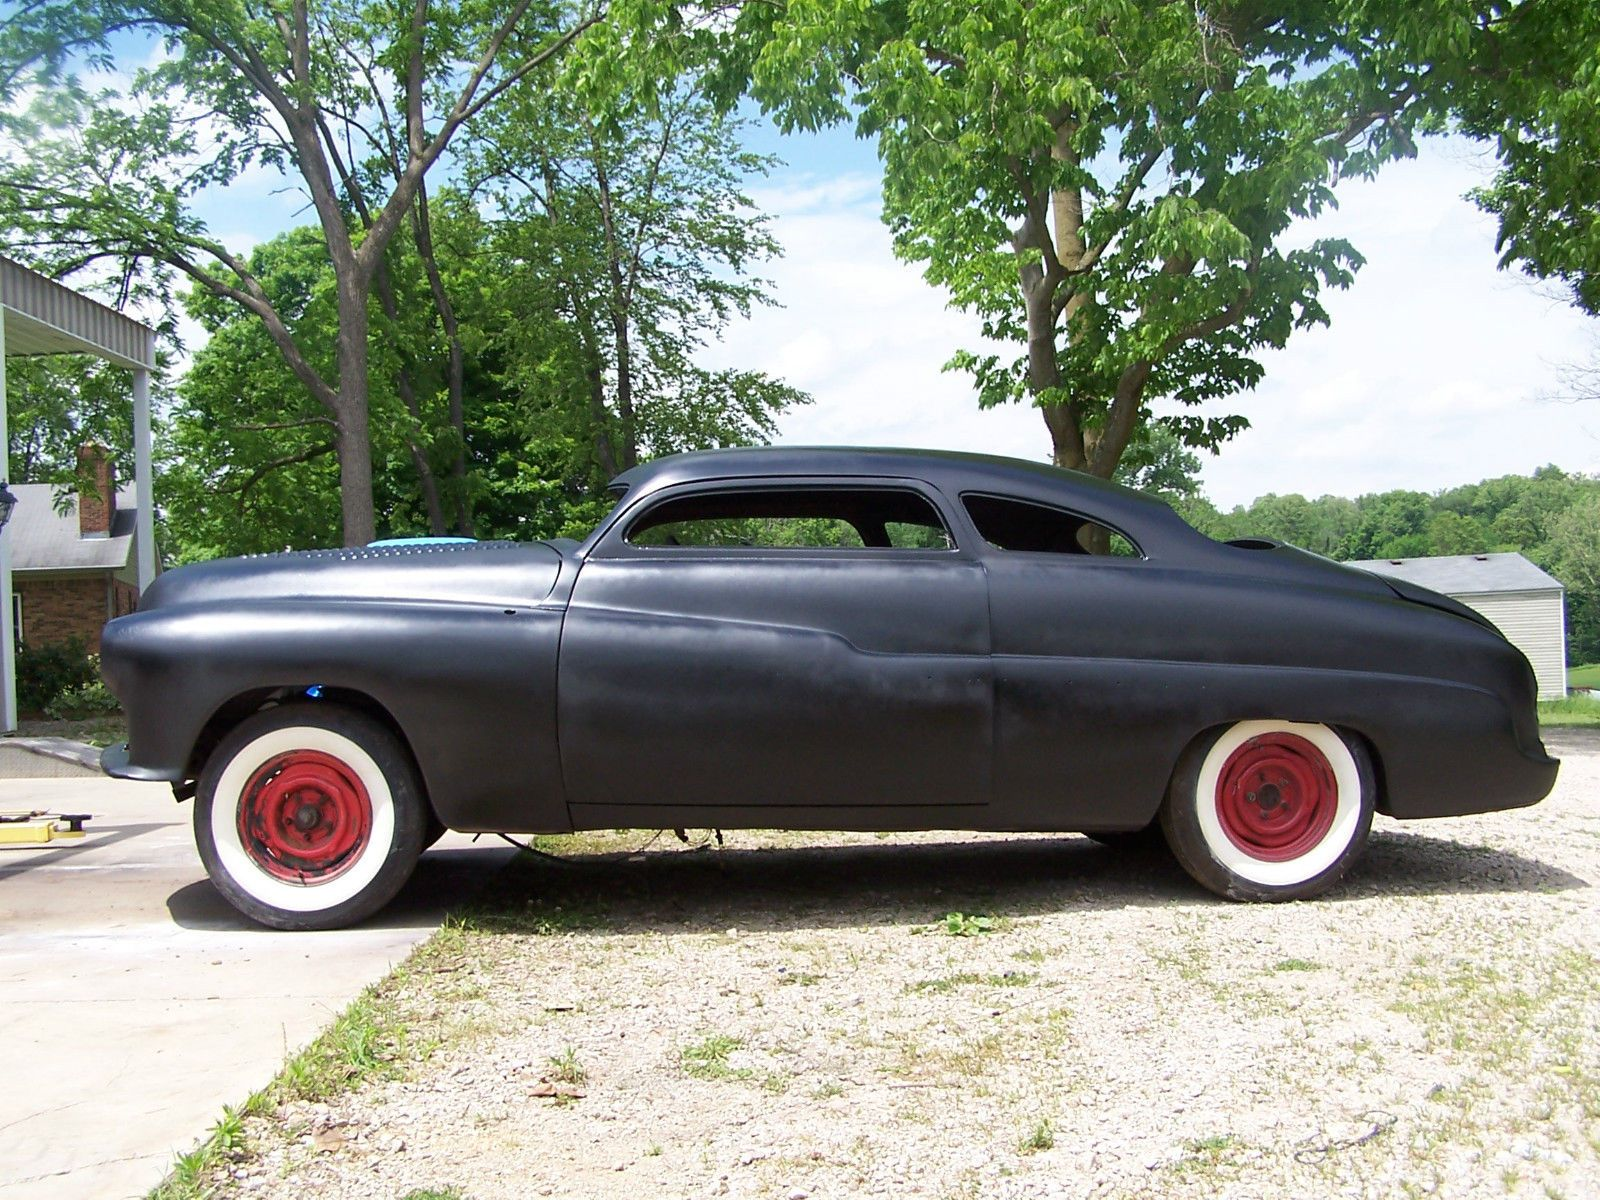 1950 Mercury coupe | Custom cars for sale | Pinterest | Custom cars ...